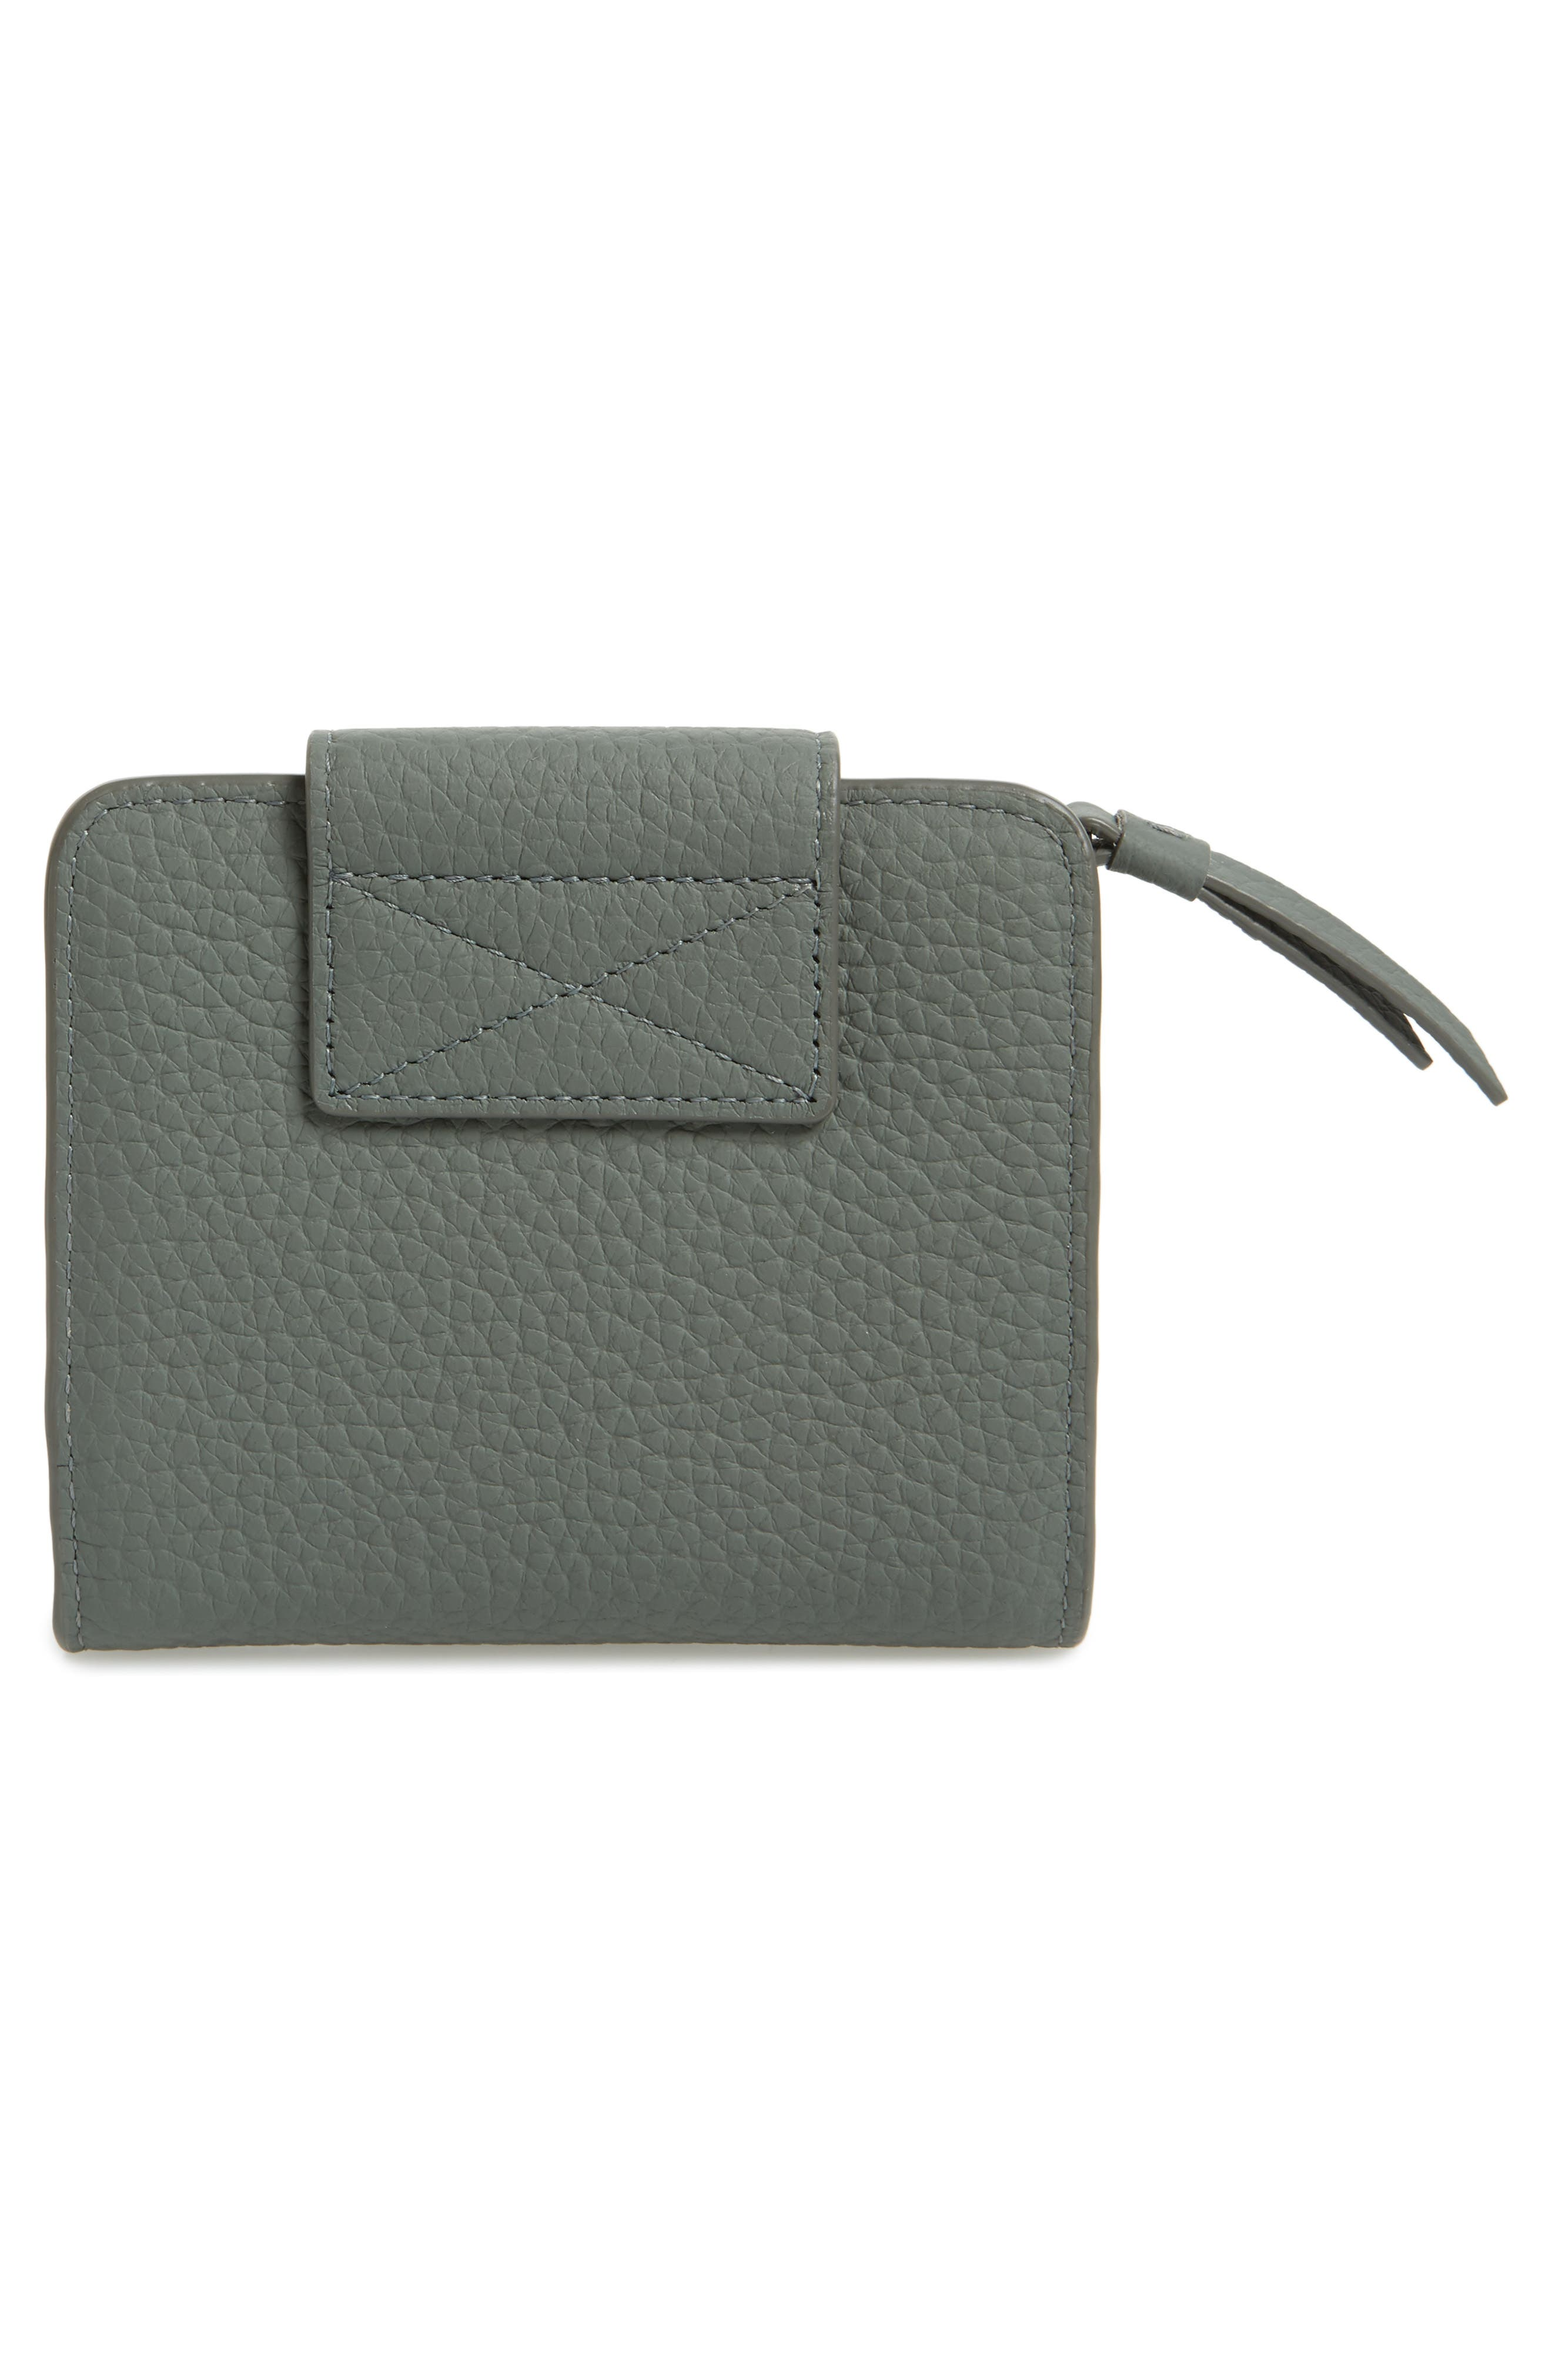 Small Ray Leather Wallet,                             Alternate thumbnail 14, color,